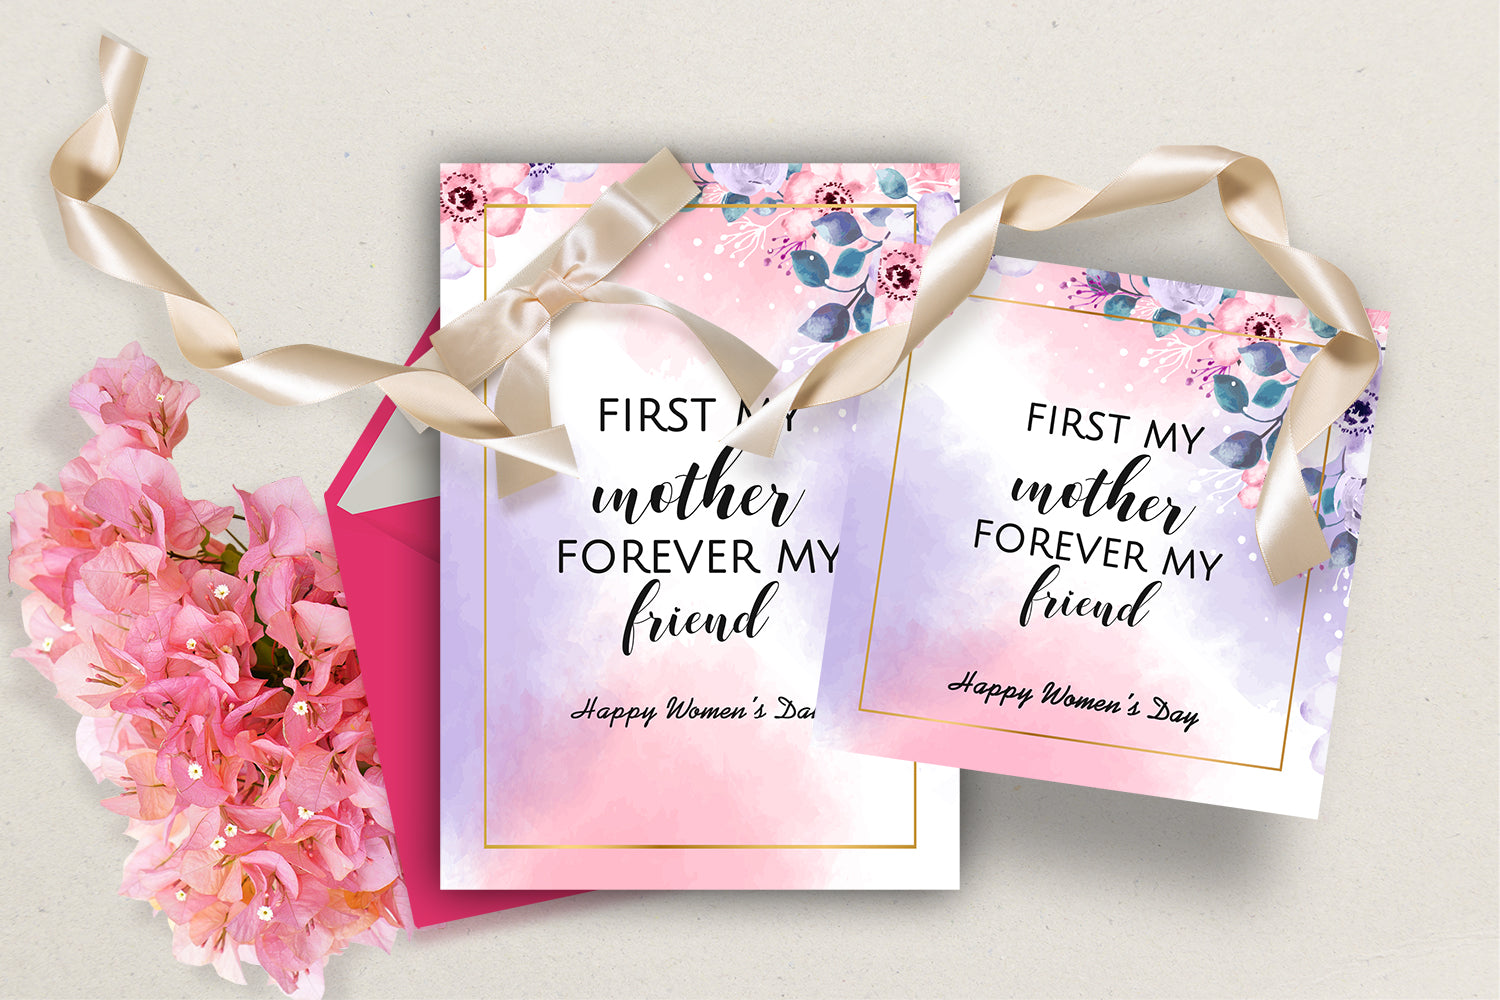 Mother's Day Greeting Cards - First My Mother, Forever My Friend, INSTANT DOWNLOAD